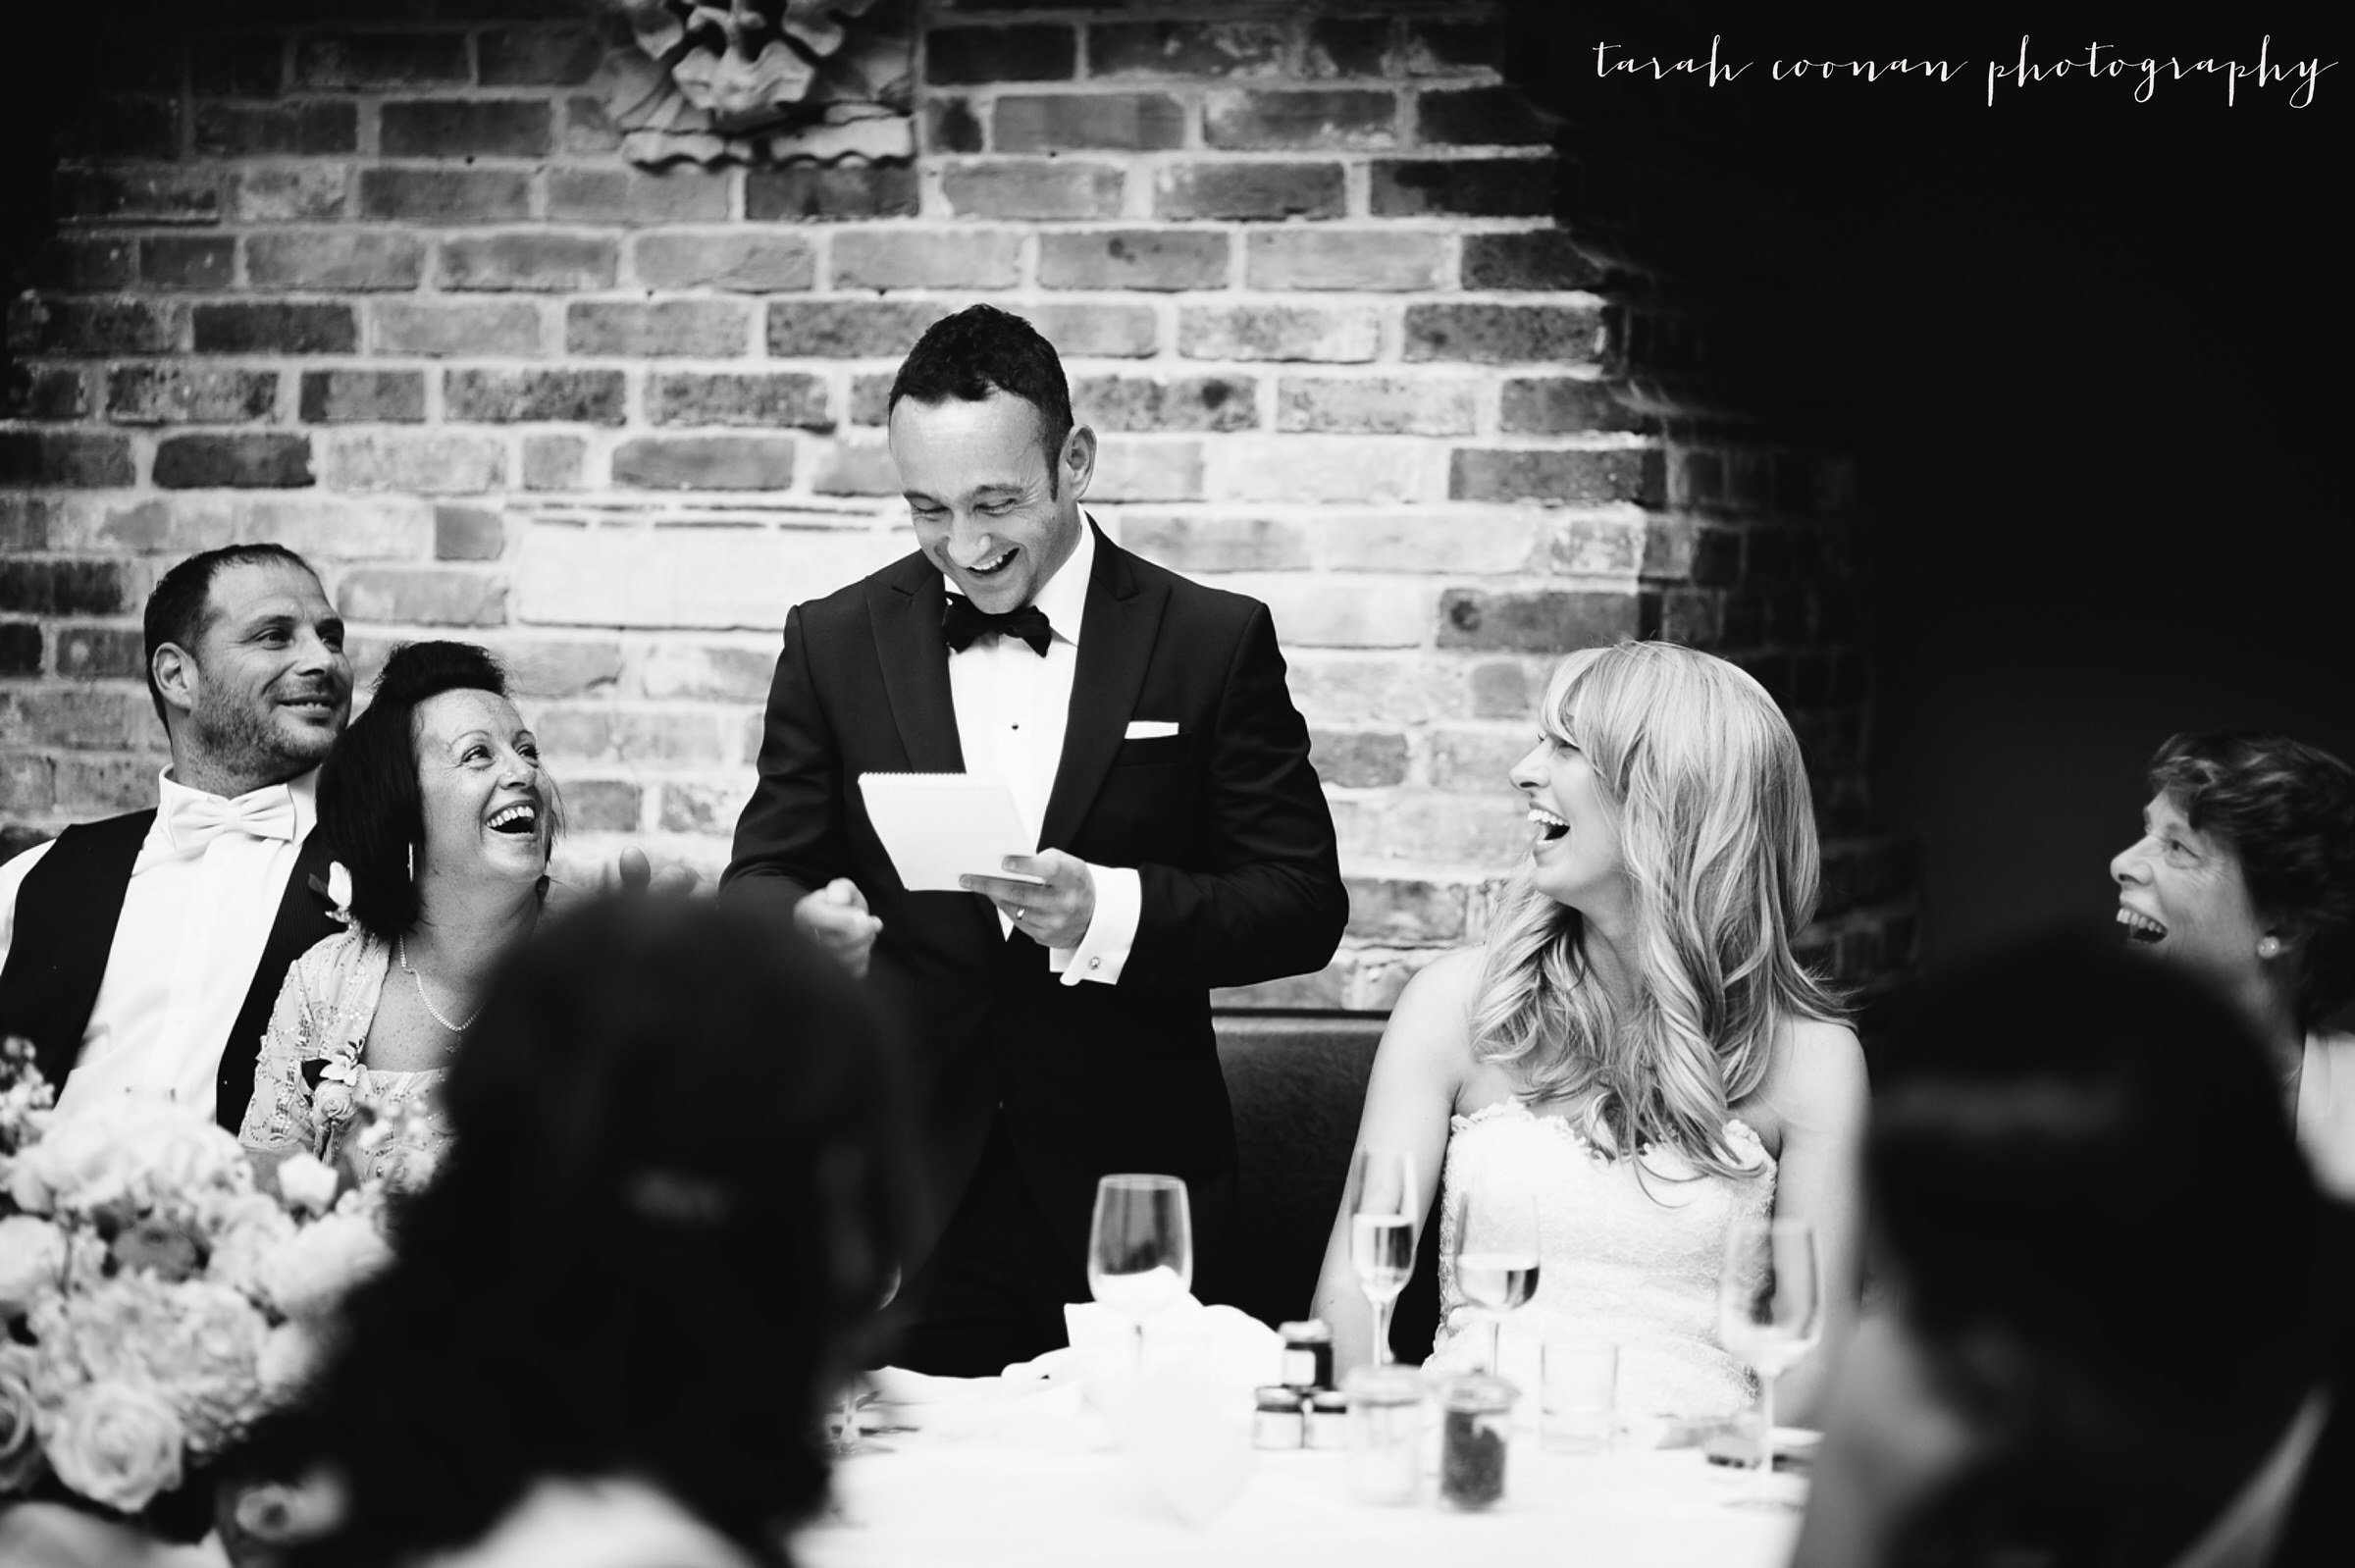 athelhampton-house-wedding_041